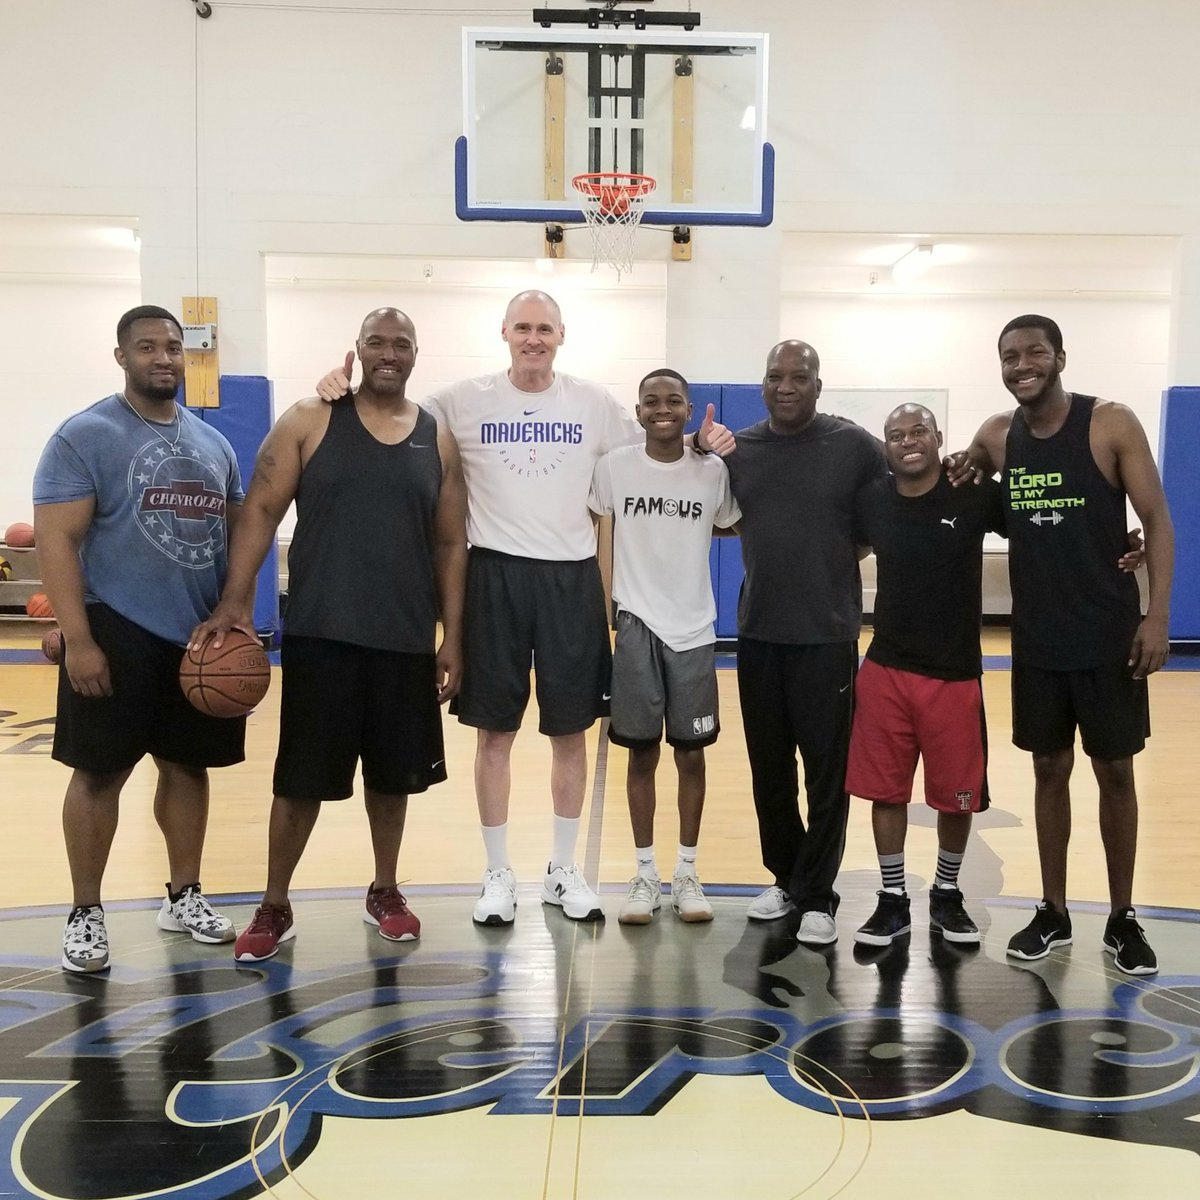 All of the musicians had a blast at #FitNotes shooting around & playing fun competitions with #DallasMavericks head coach #RickCarlisle, who loves music & plays piano too! •  •  • A #LifeNotes event to support #activelifestyle & #wholehealth. Hosted by #TheMusicStand.